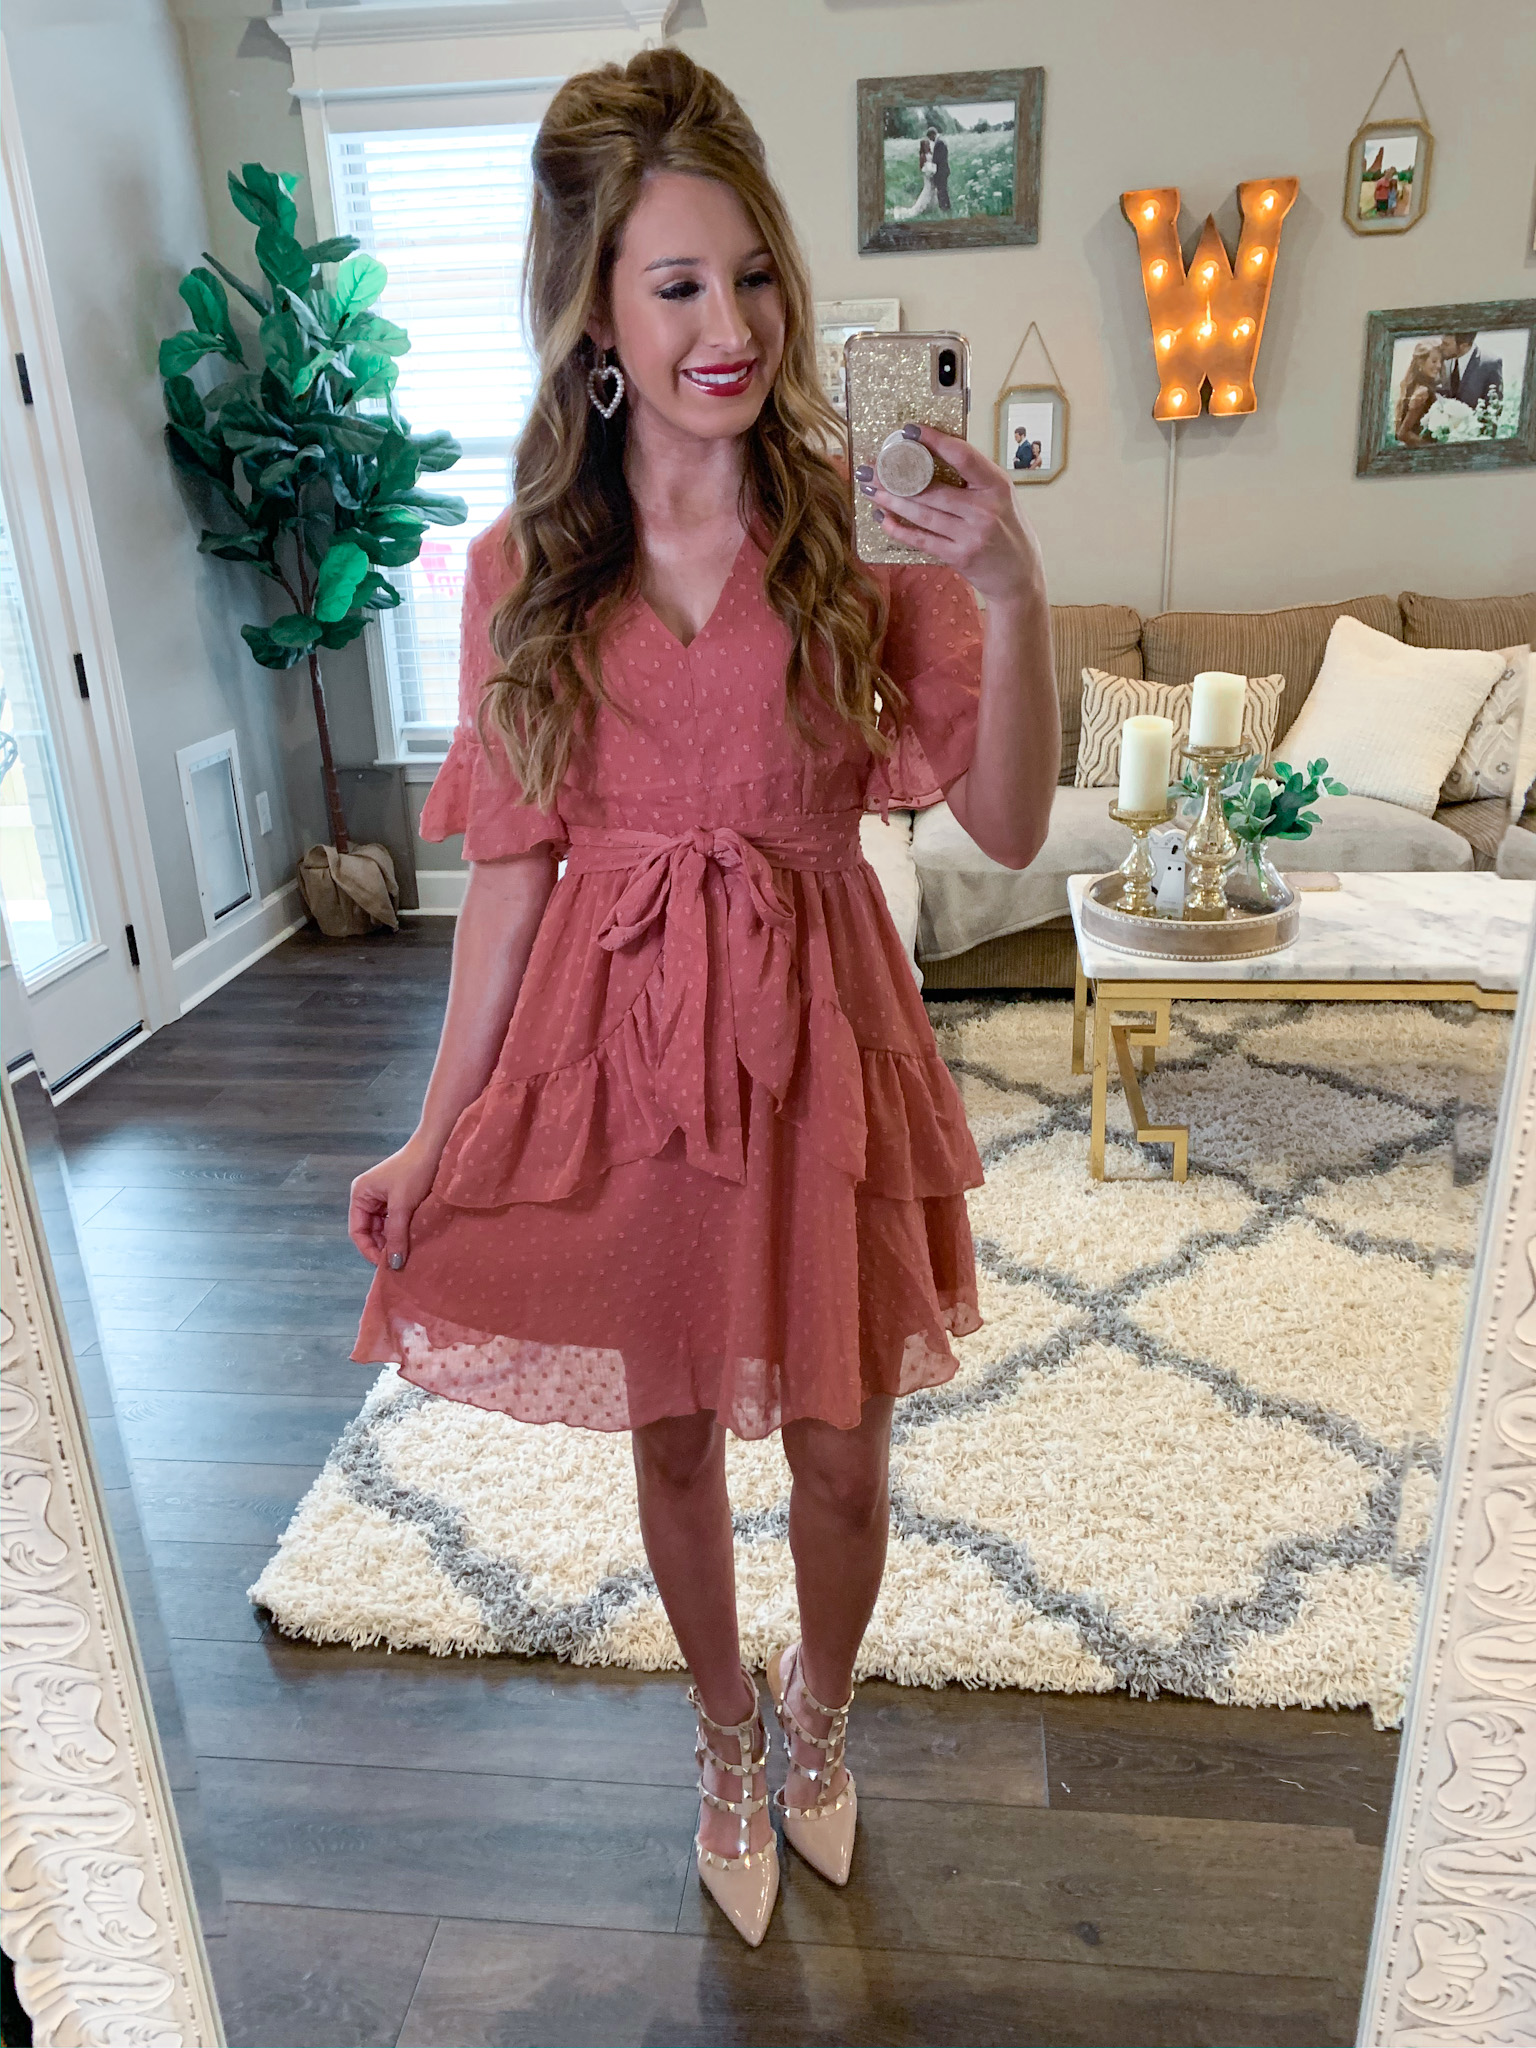 IMG 4083 - Amazon Prime Valentine's Day Outfits